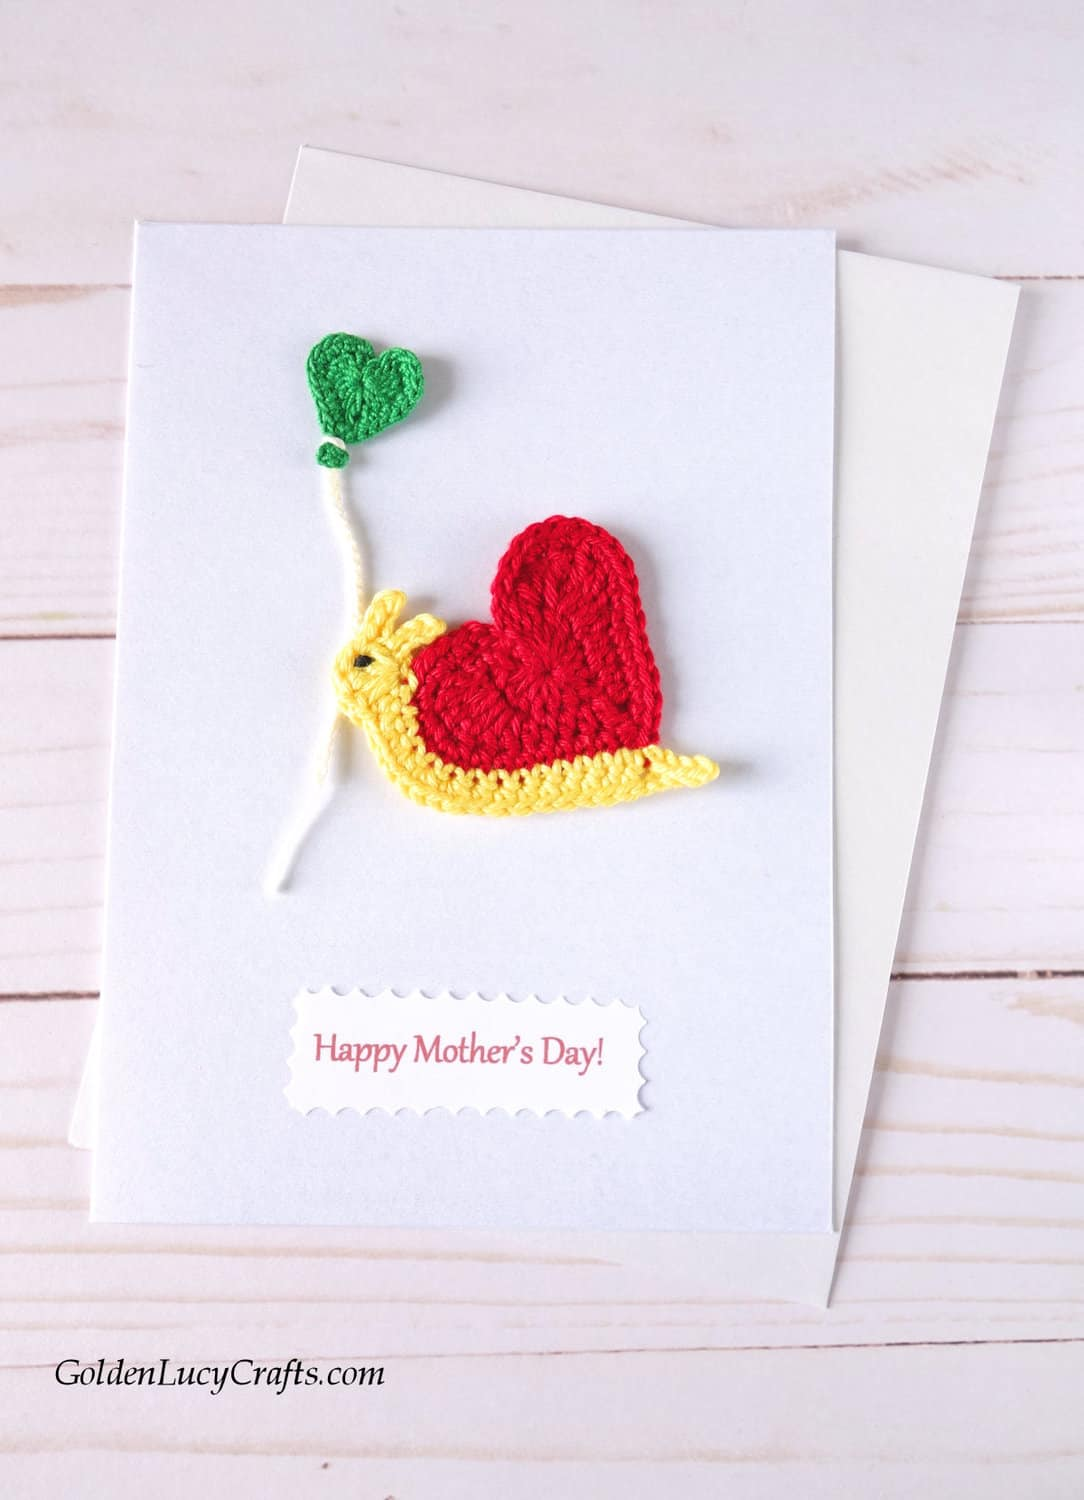 Mother's Day handmade card with crocheted heart snail applique.